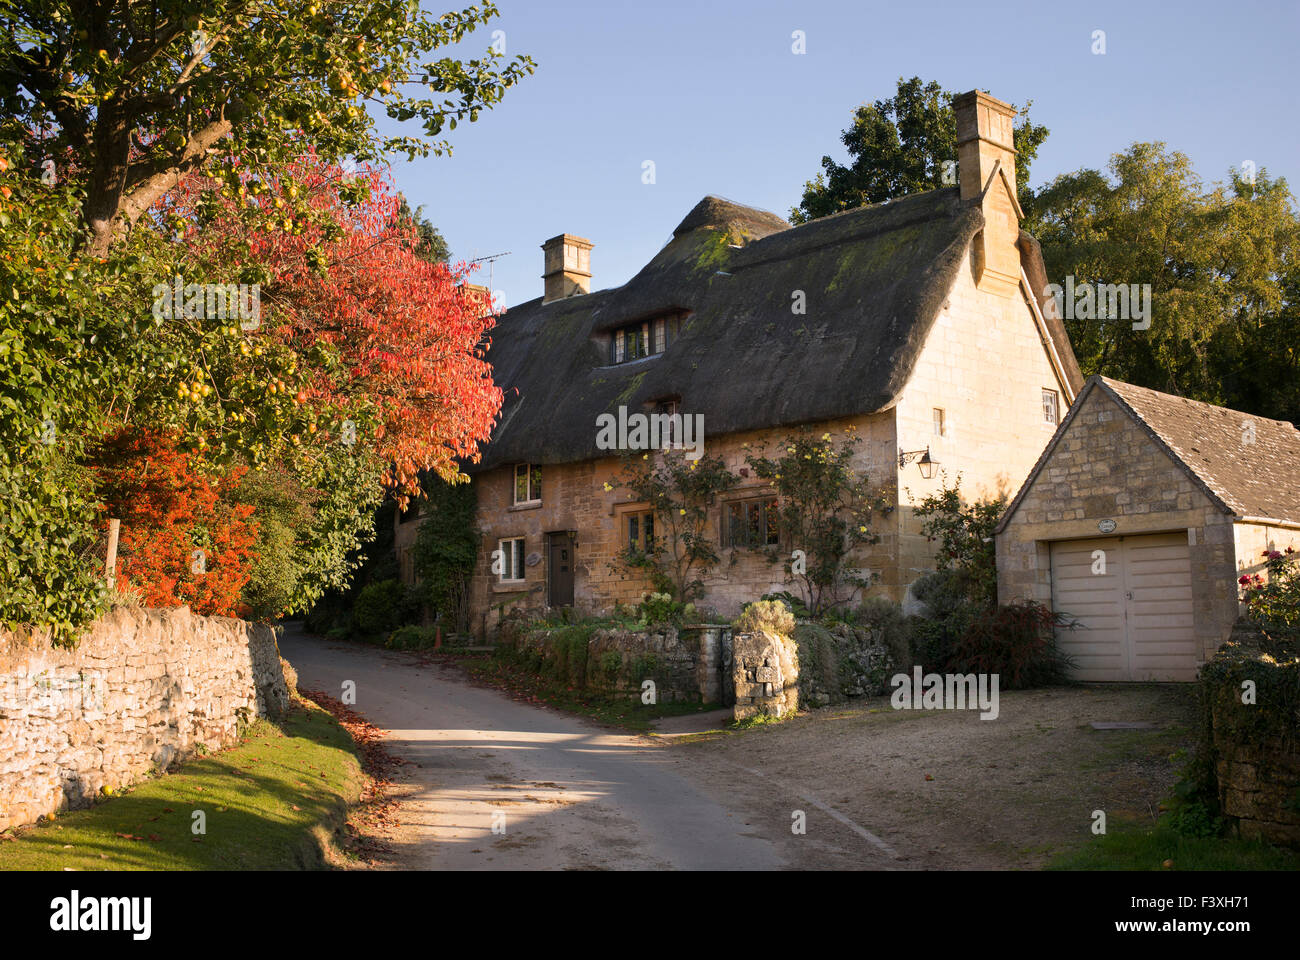 Cotswold thatched cottage in Stanton village, Cotswolds, Gloucestershire, England Stock Photo